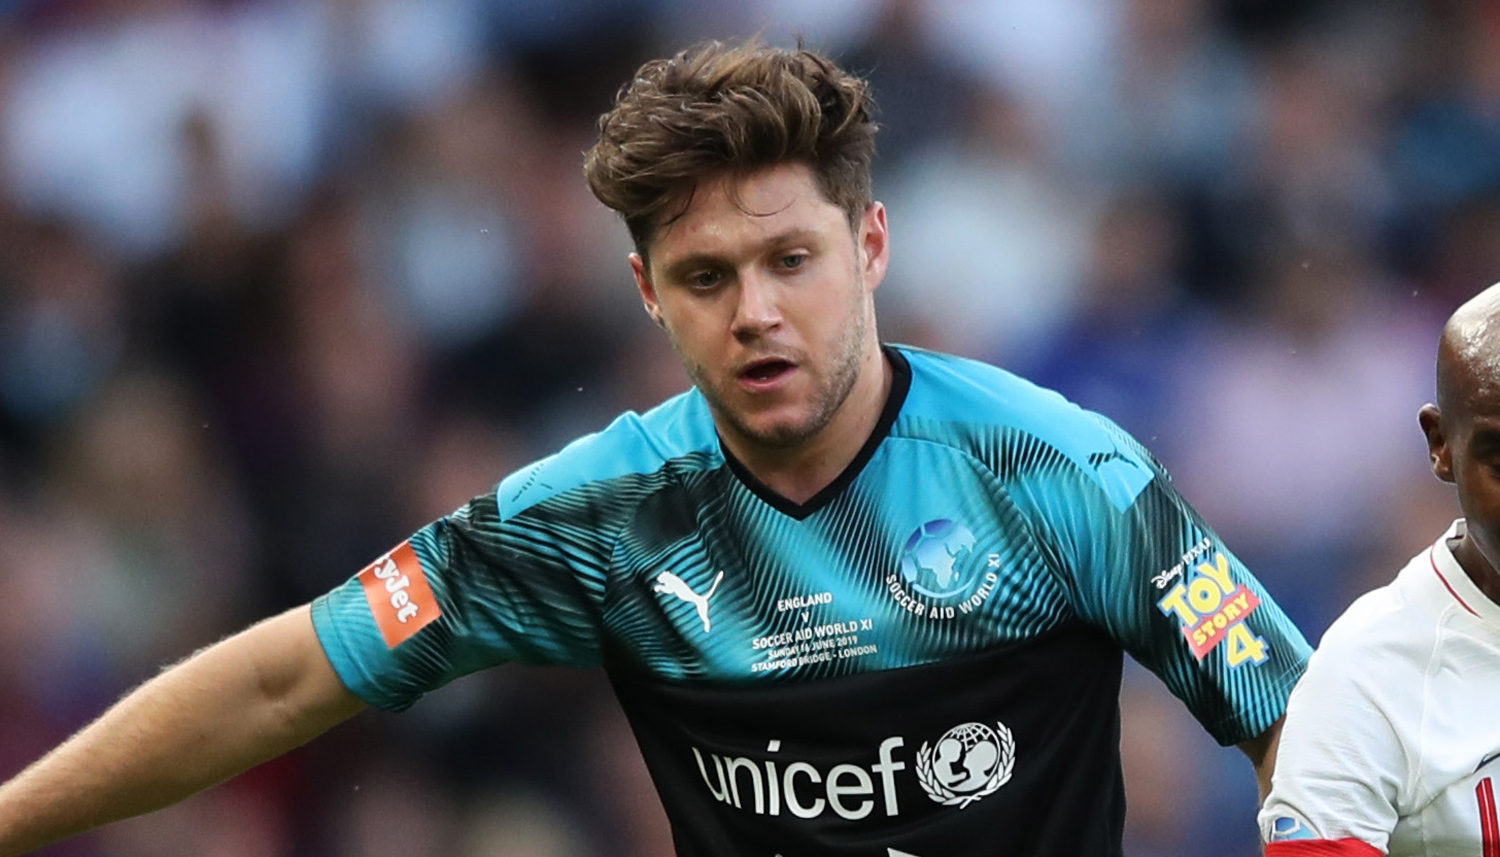 Niall Horan Hits The Field For Charity Soccer Match